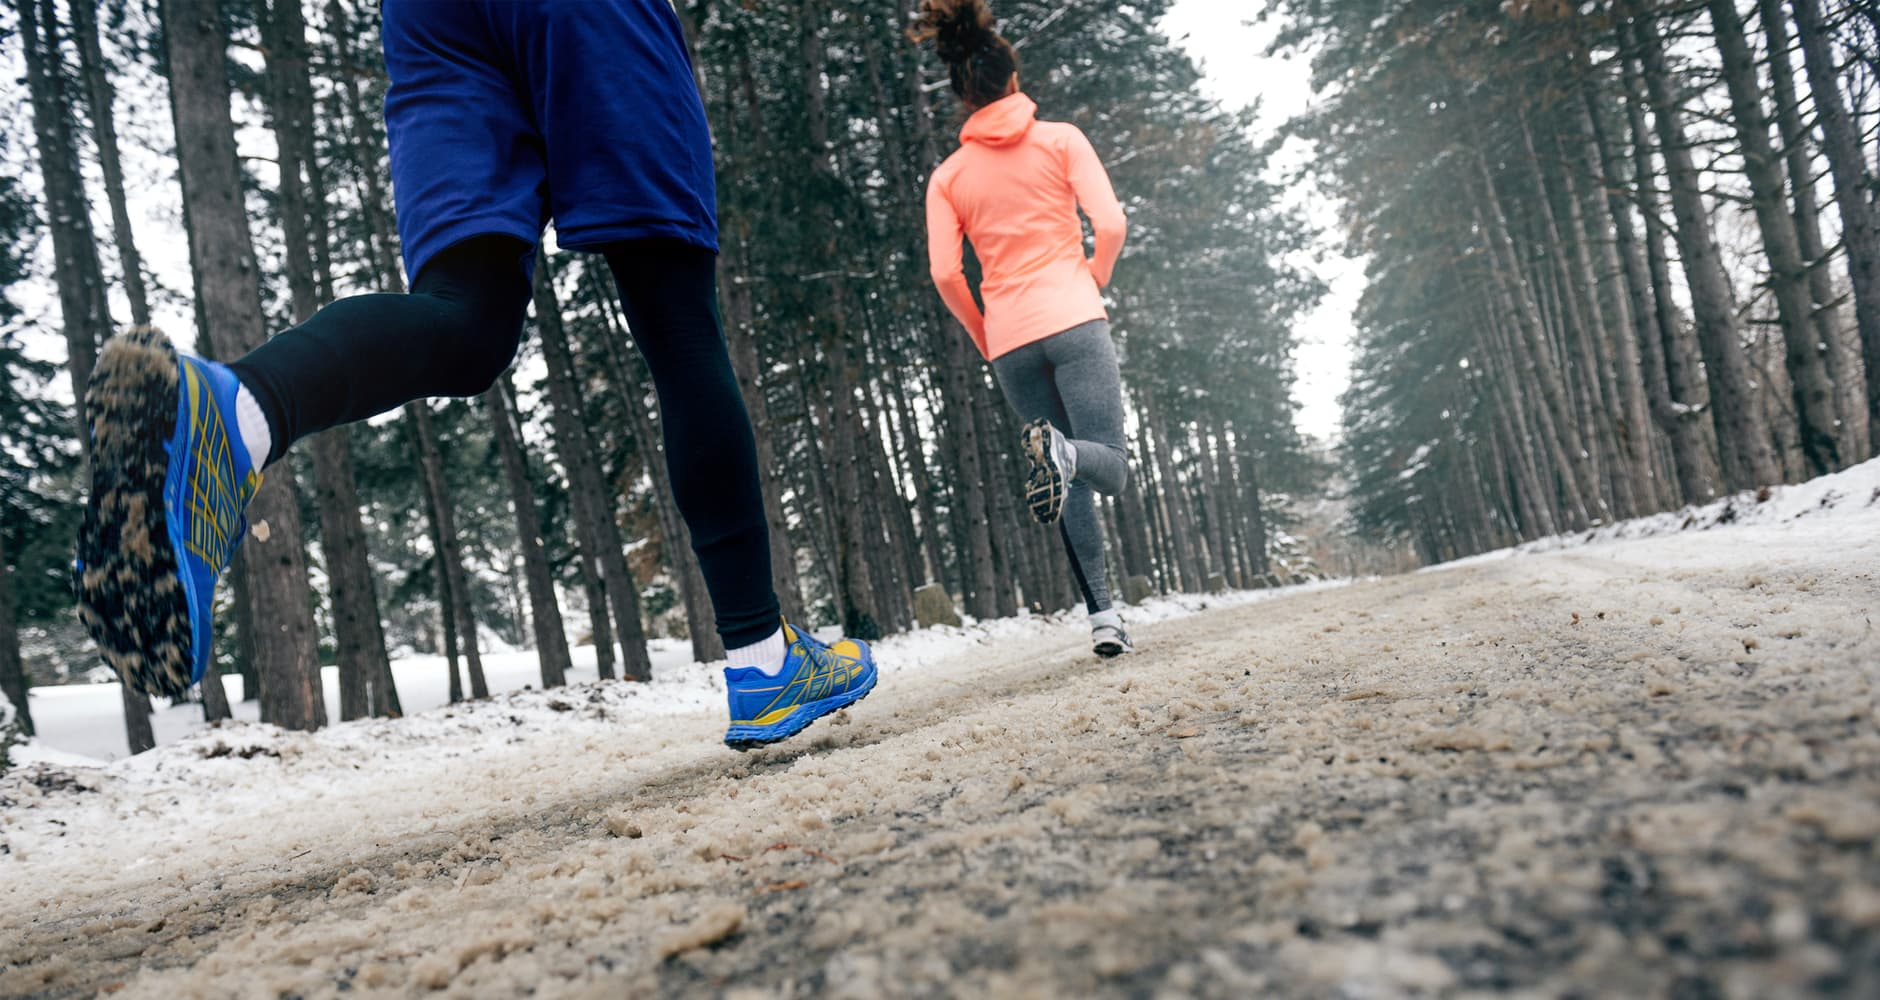 Cold weather health benefits - two people running outside on a snowy road